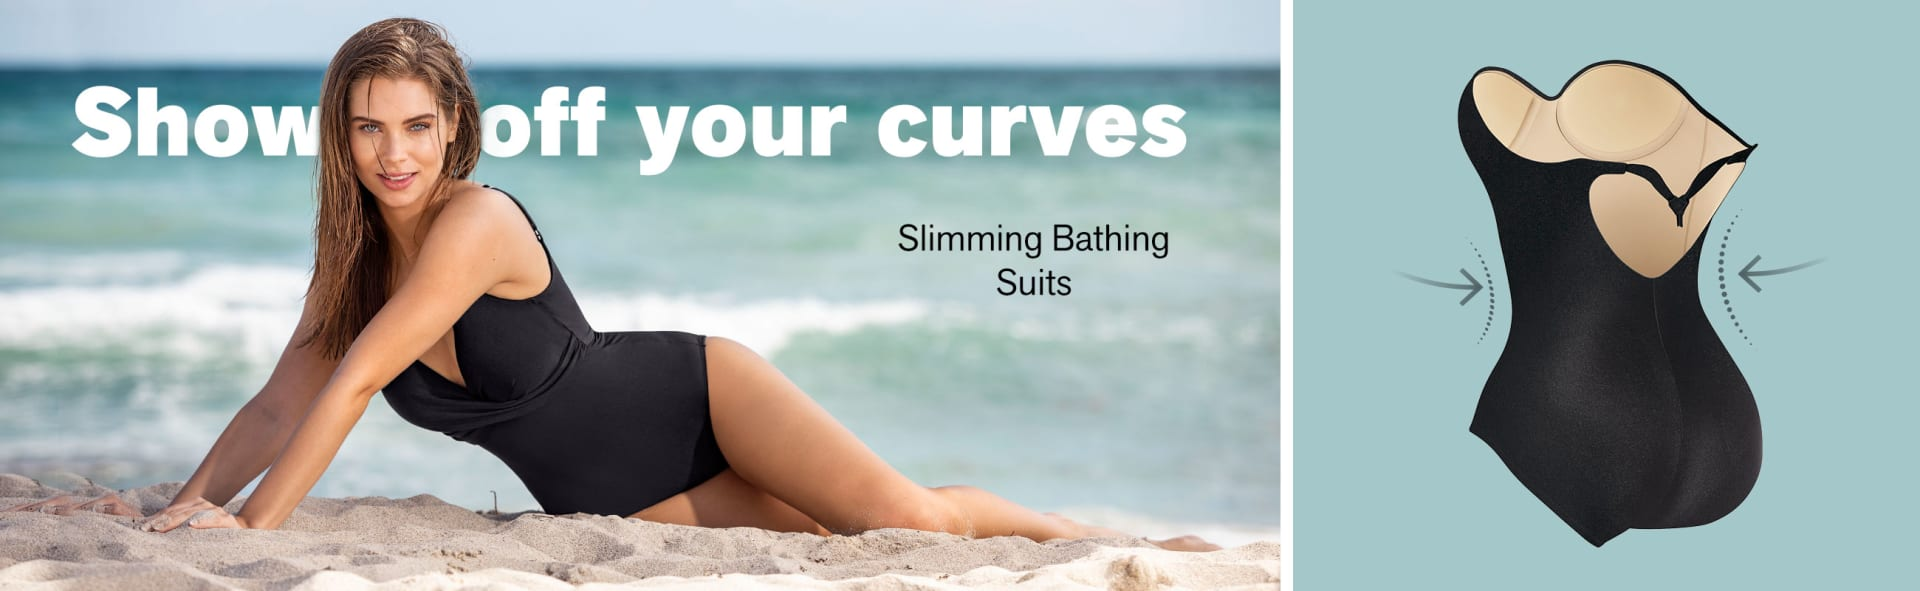 Slimming Bathing Suits - Leonisa